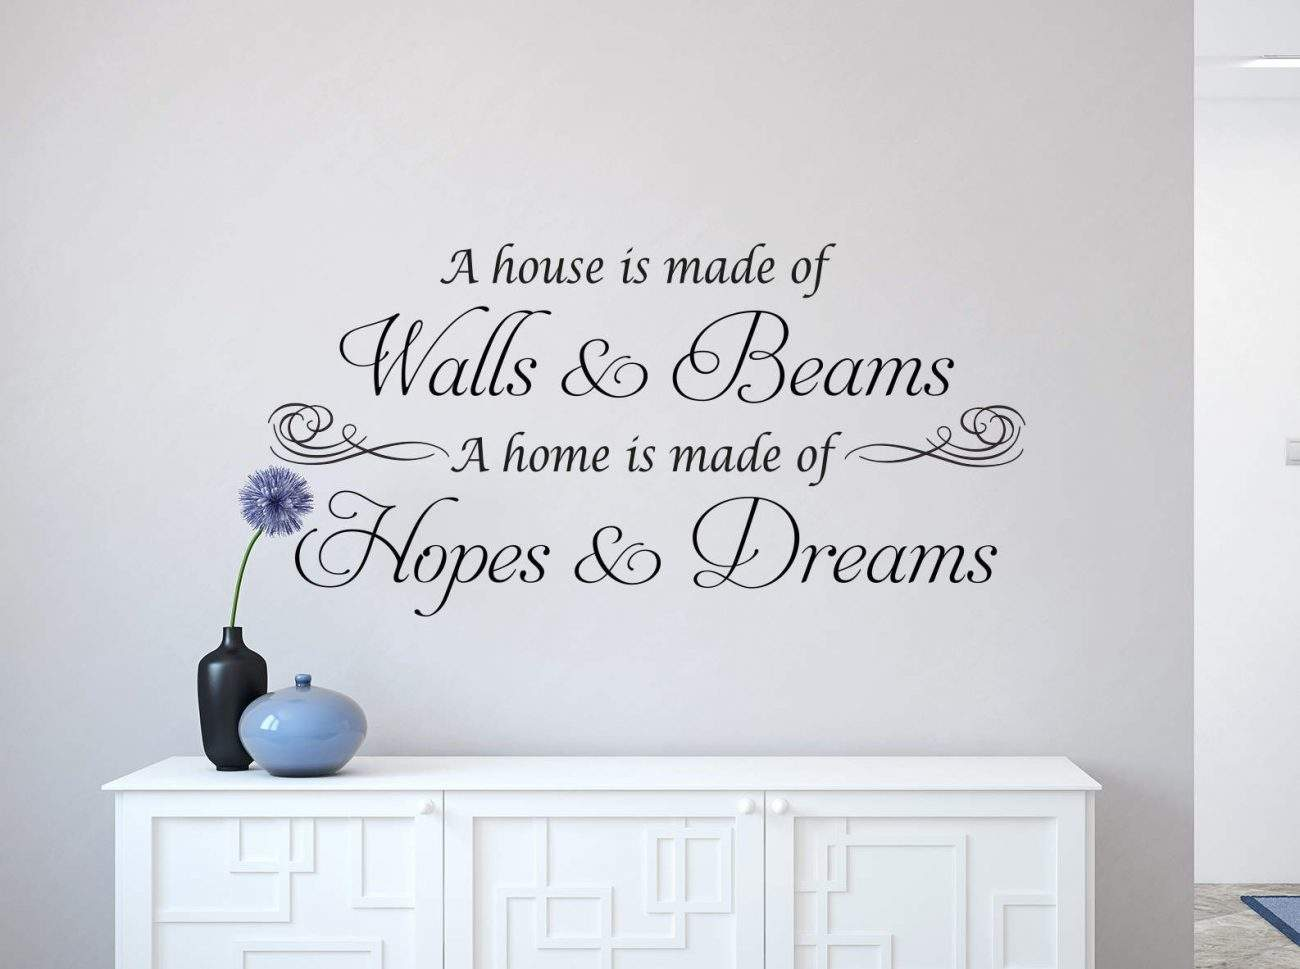 Wall and beams, hopes and dreams wall decal sticker, wall decals